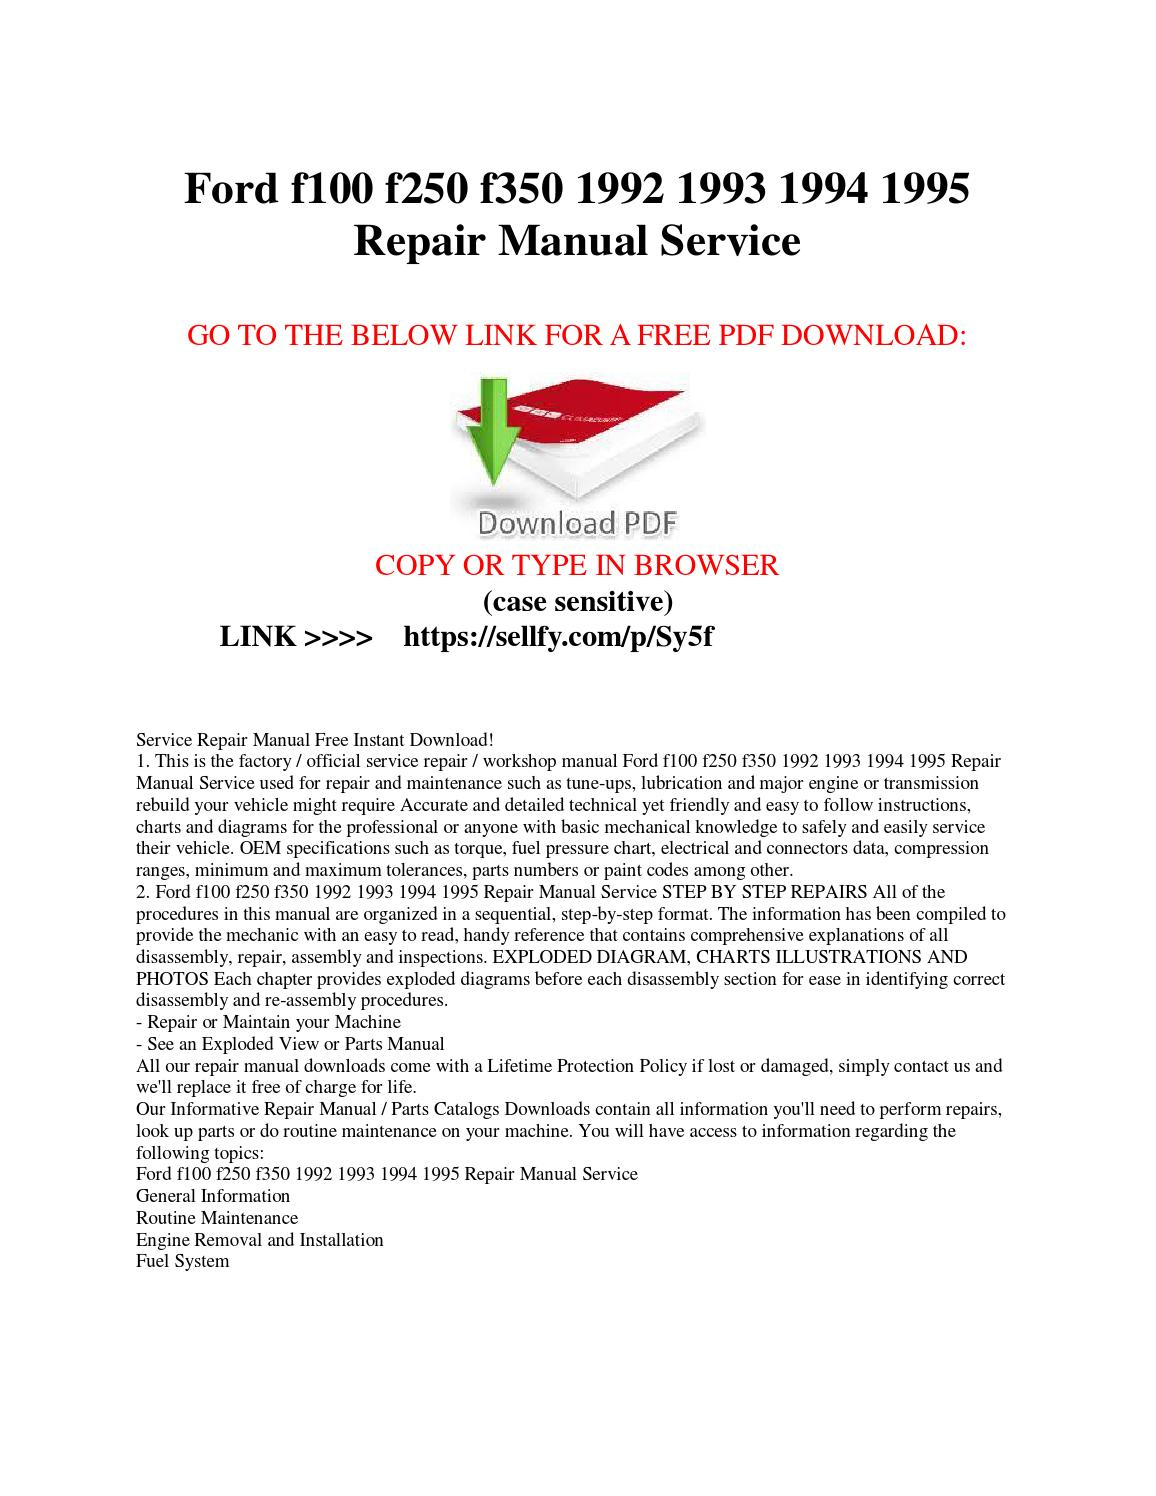 ford service manuals free download